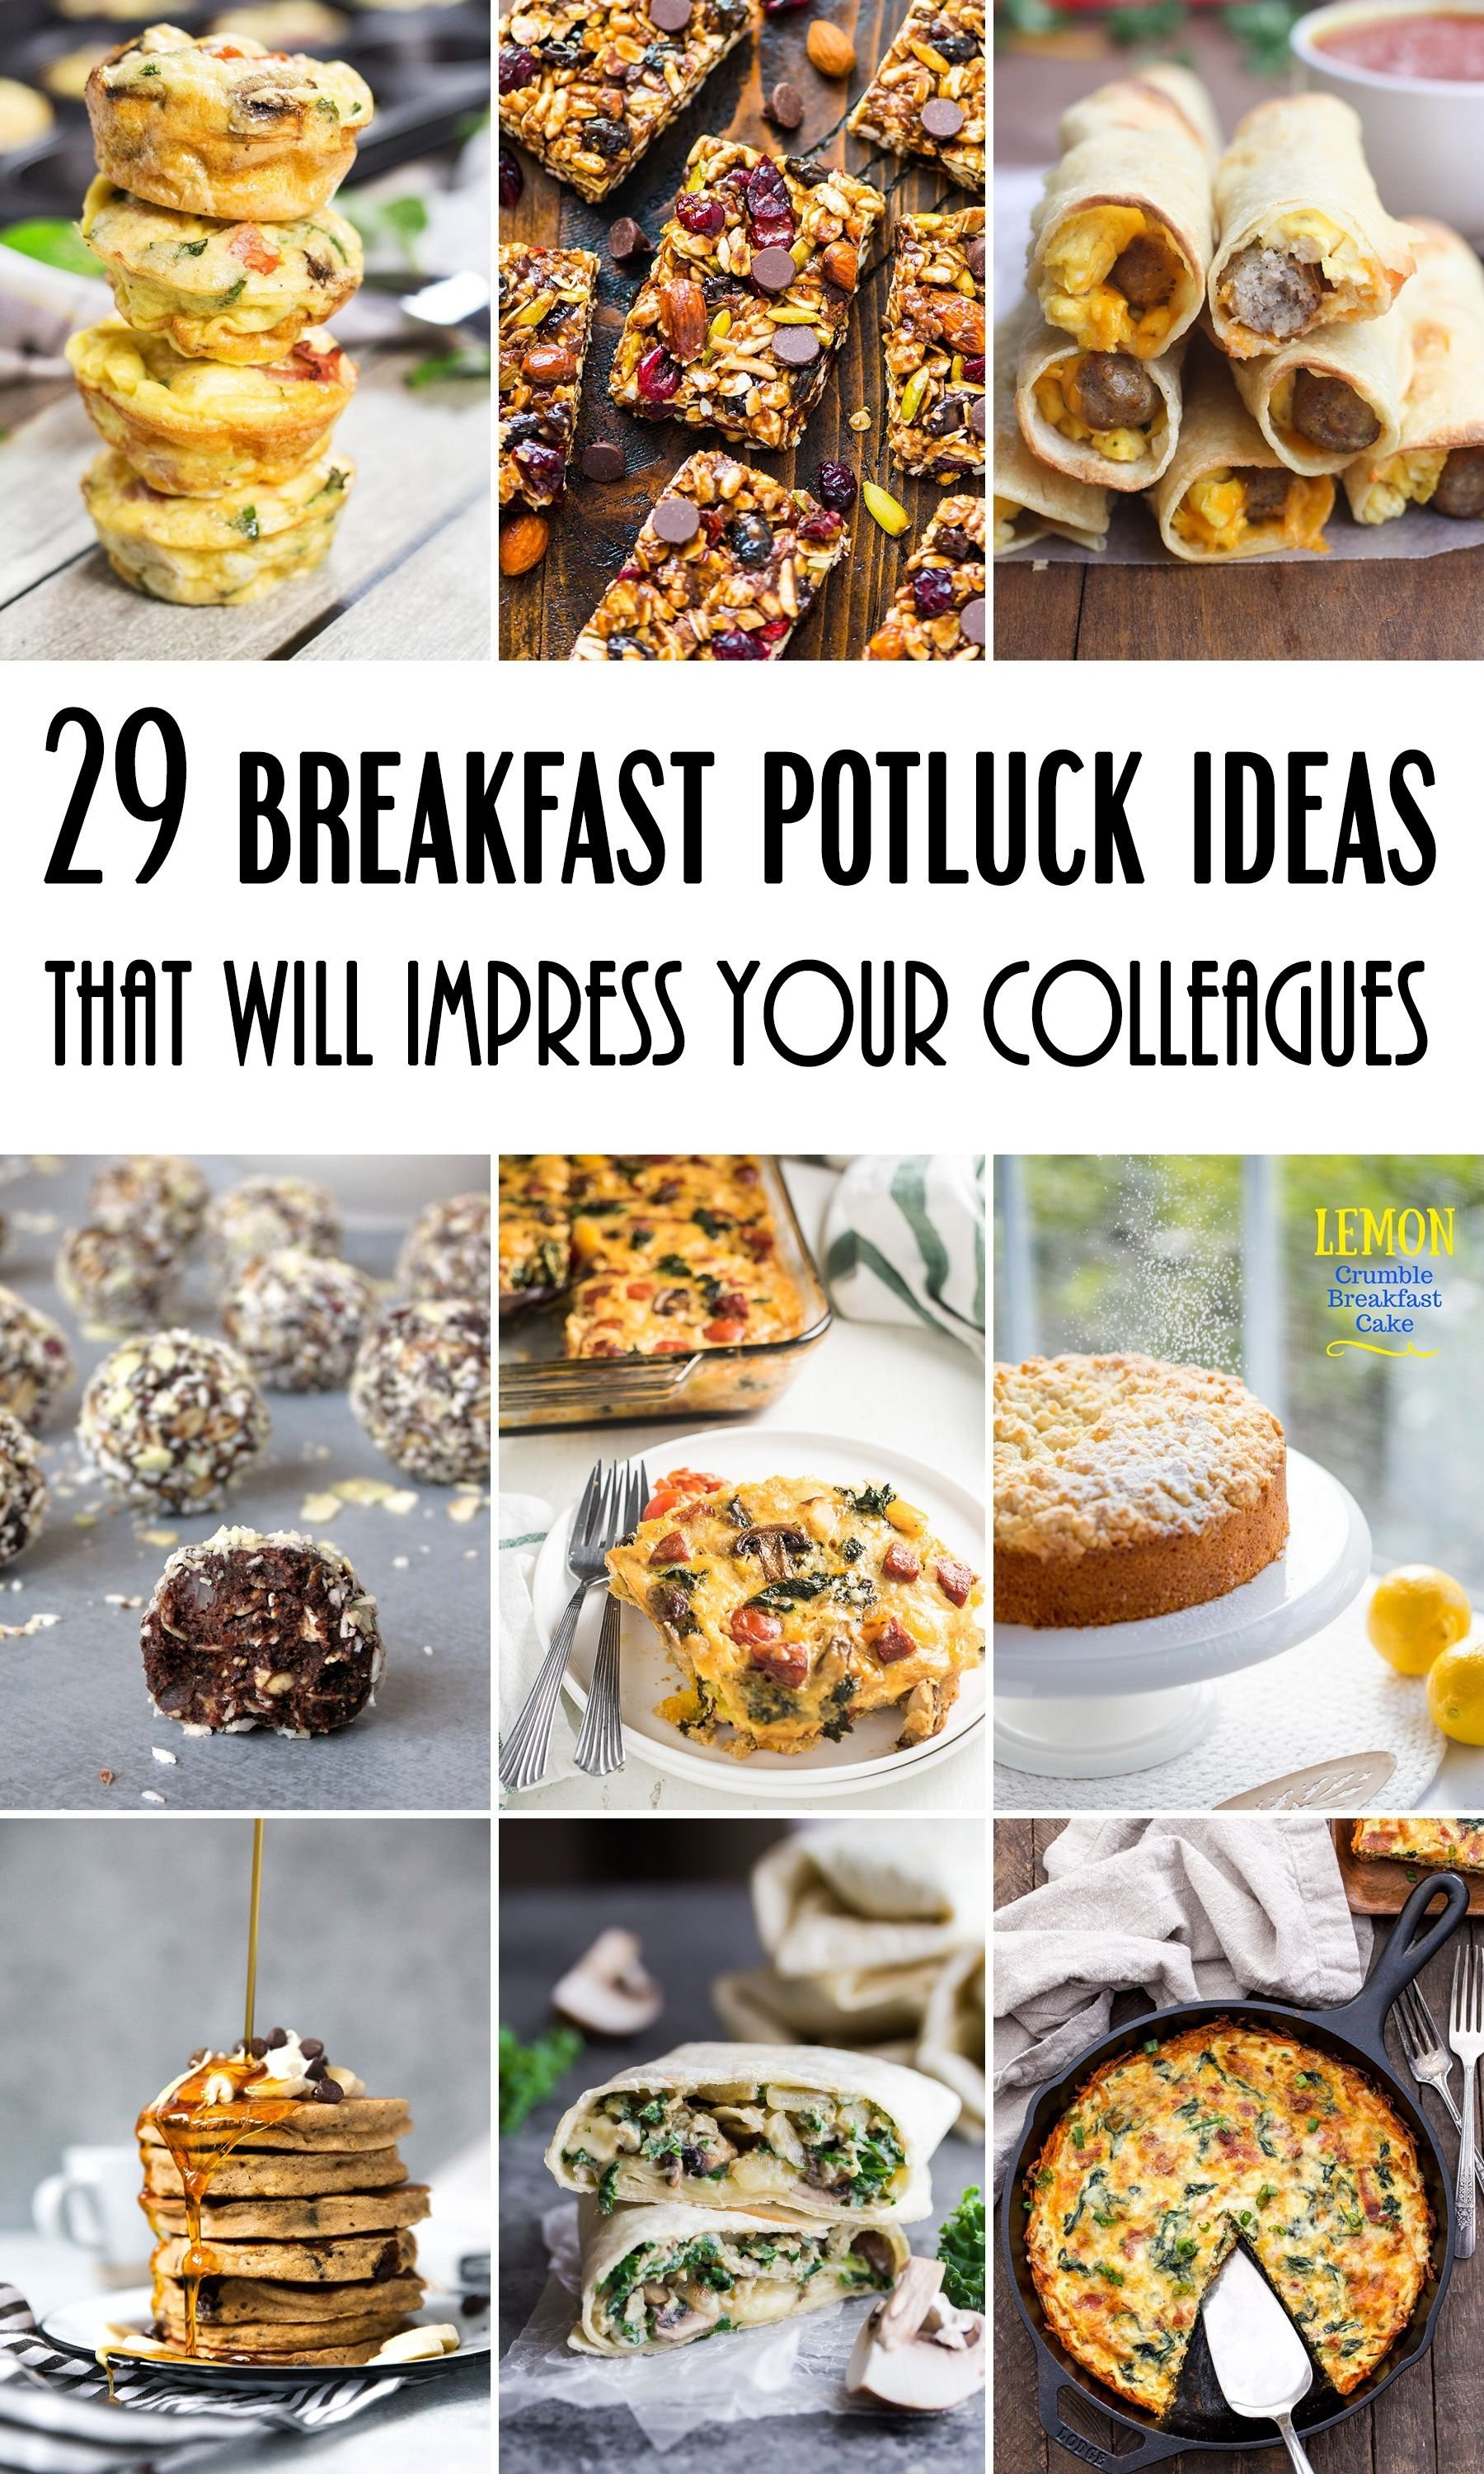 29 breakfast potluck ideas for work that will impress your